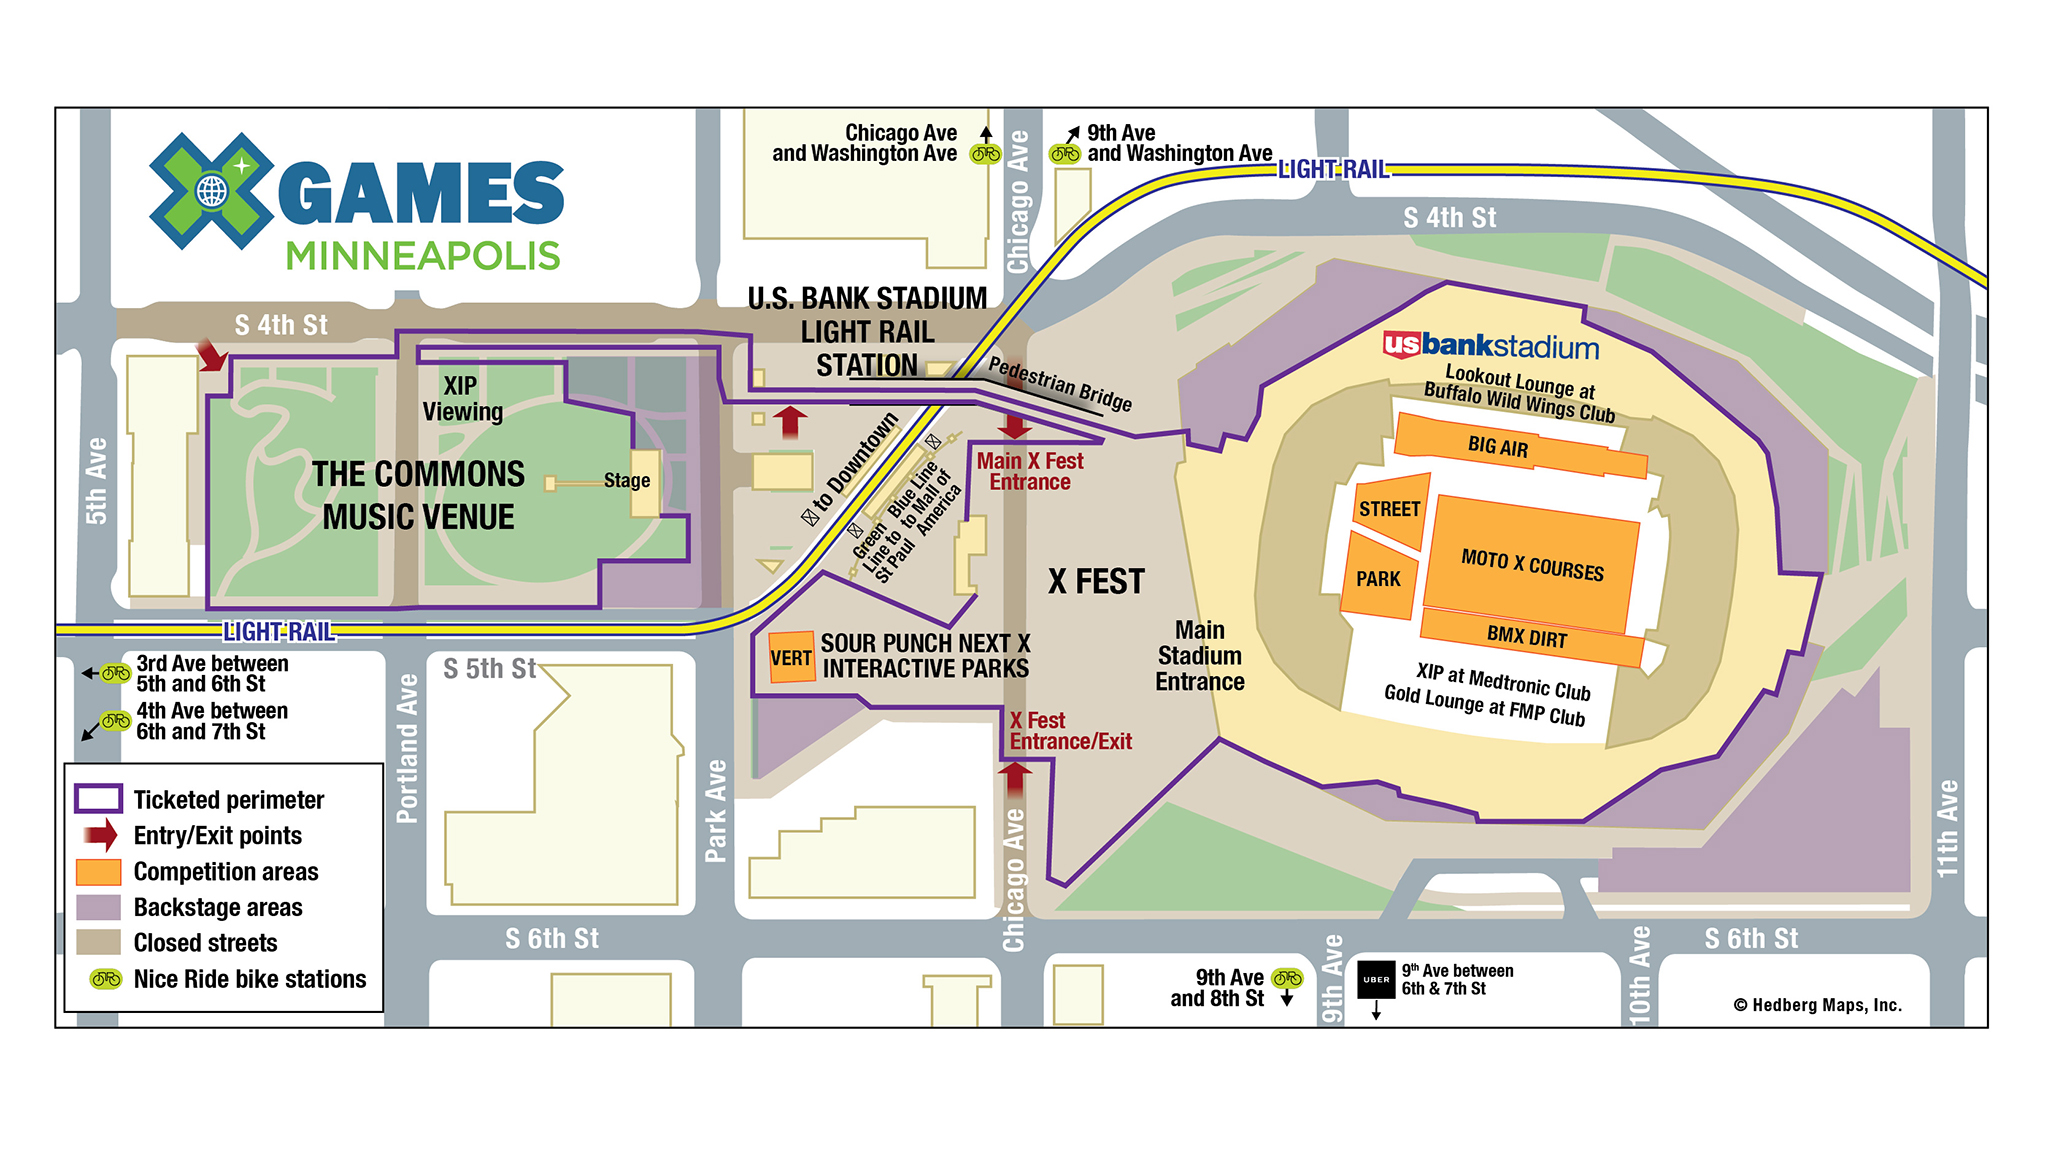 X Games Minneapolis 2017: Venue Hours, Parking and ... on mall of america expansion map, seaworld orlando parking map, santa anita race track parking map, san antonio parking map, minnesota vikings parking map, crabtree valley mall parking map, university of st. thomas parking map, mn state fairgrounds parking map, mall of america area map, camp snoopy mall of america map, nickelodeon universe mall of america map, mall of america map printable, mariucci arena parking map, des moines parking map, outside mall of america map, new orleans french quarter parking map, patriot place parking map, downtown minneapolis parking map, towson town center parking map, lehigh valley mall parking map,